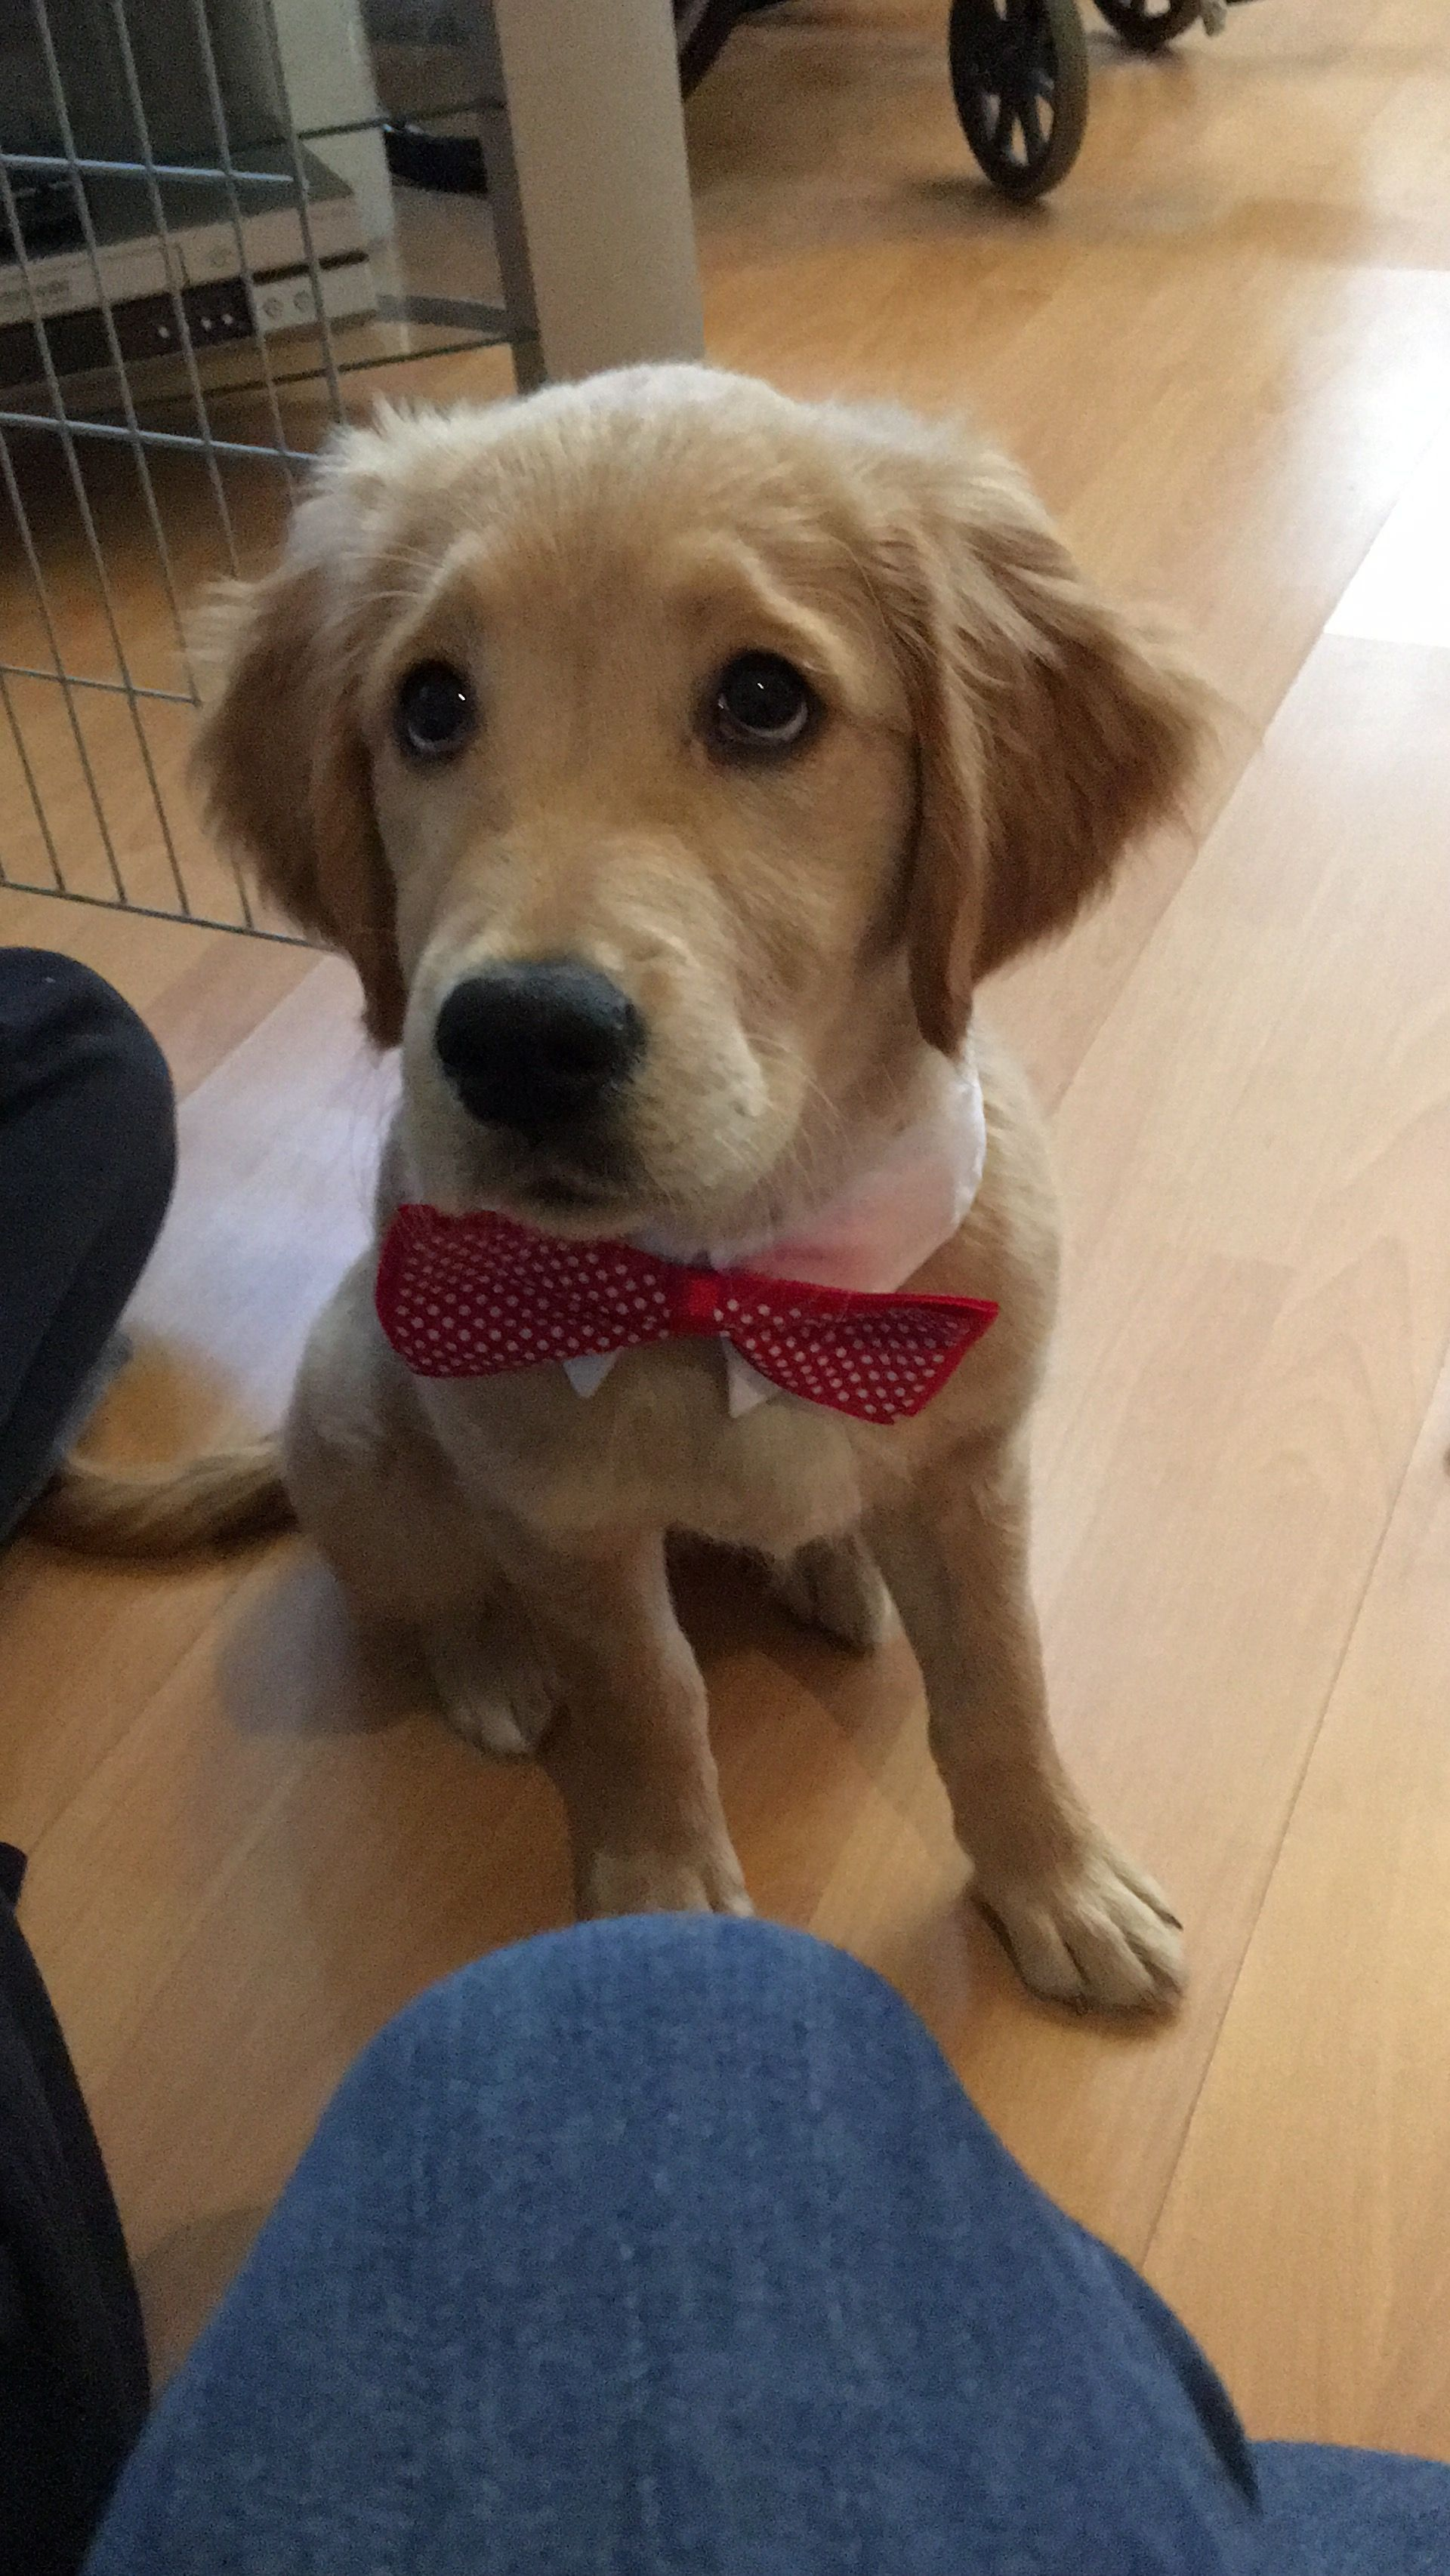 Rosie My Assistance Dog In Training As A Golden Puppy Wearing A